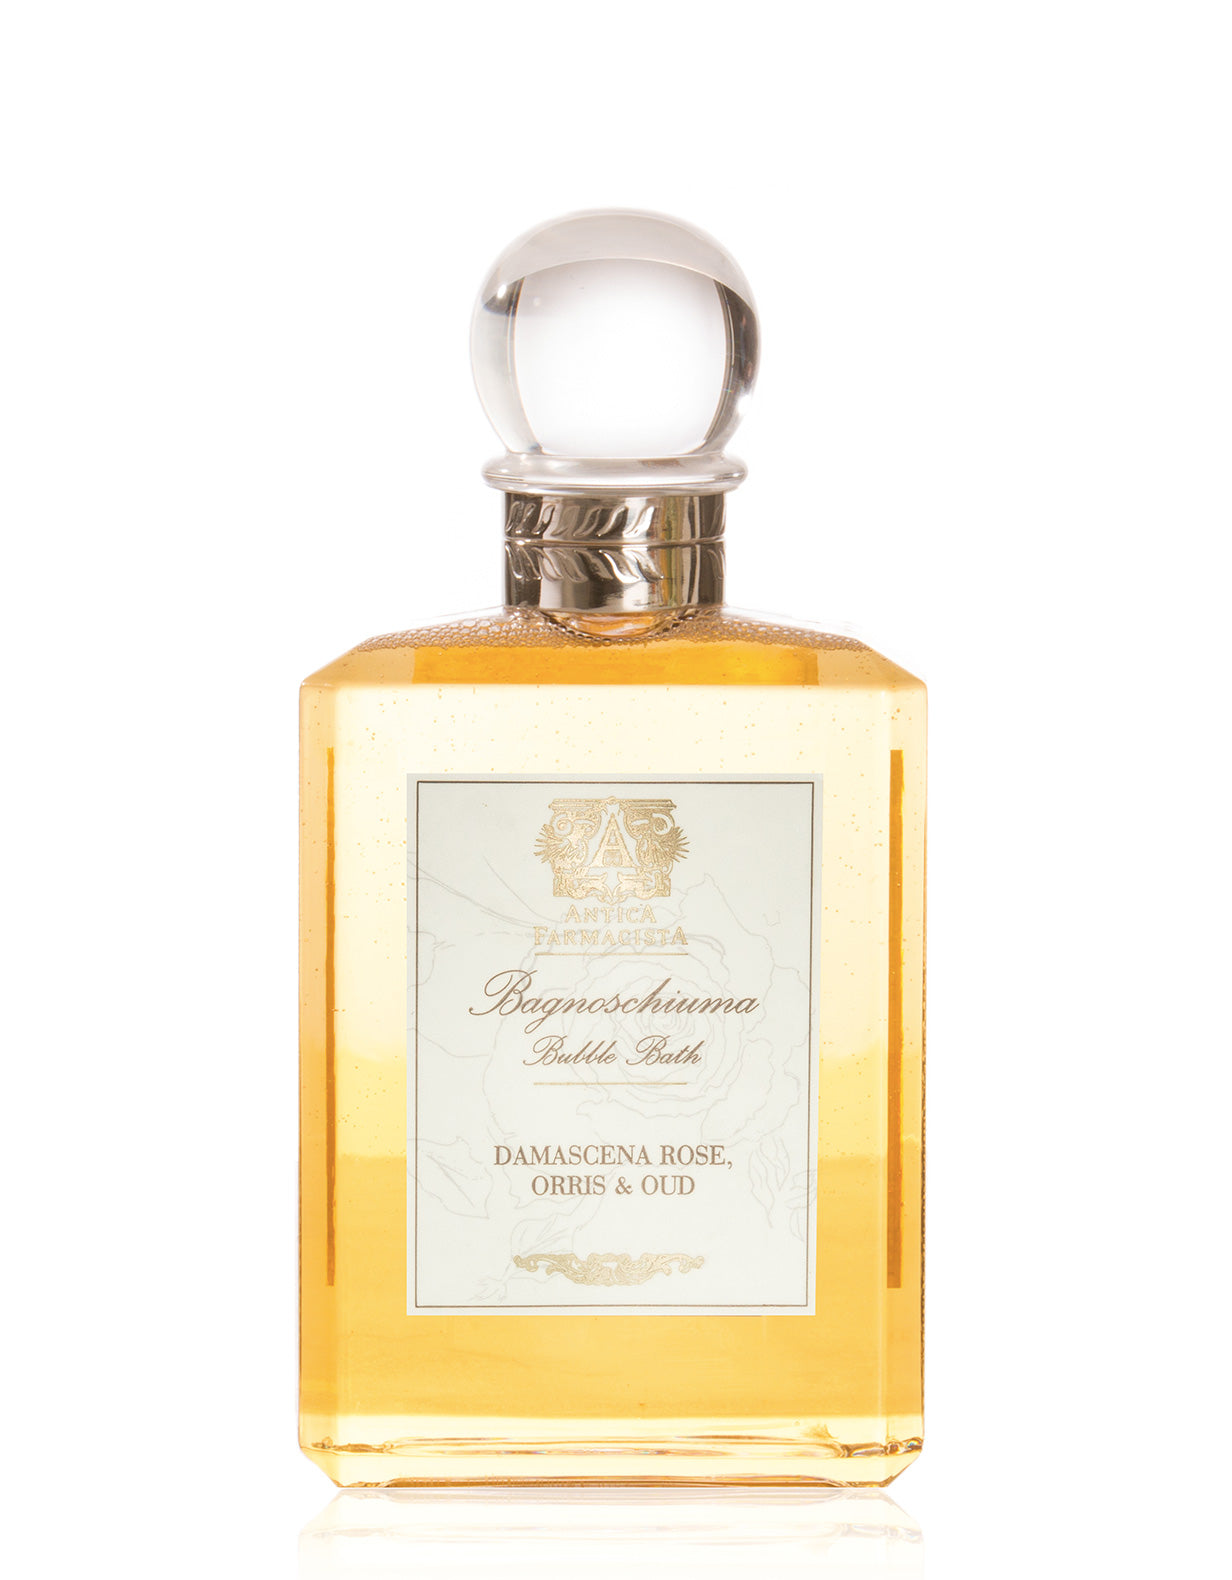 ANTICA FARMACISTA - 15.8 OZ BUBBLE BATH IN DAMASCENA ROSE, ORRIS & OUD